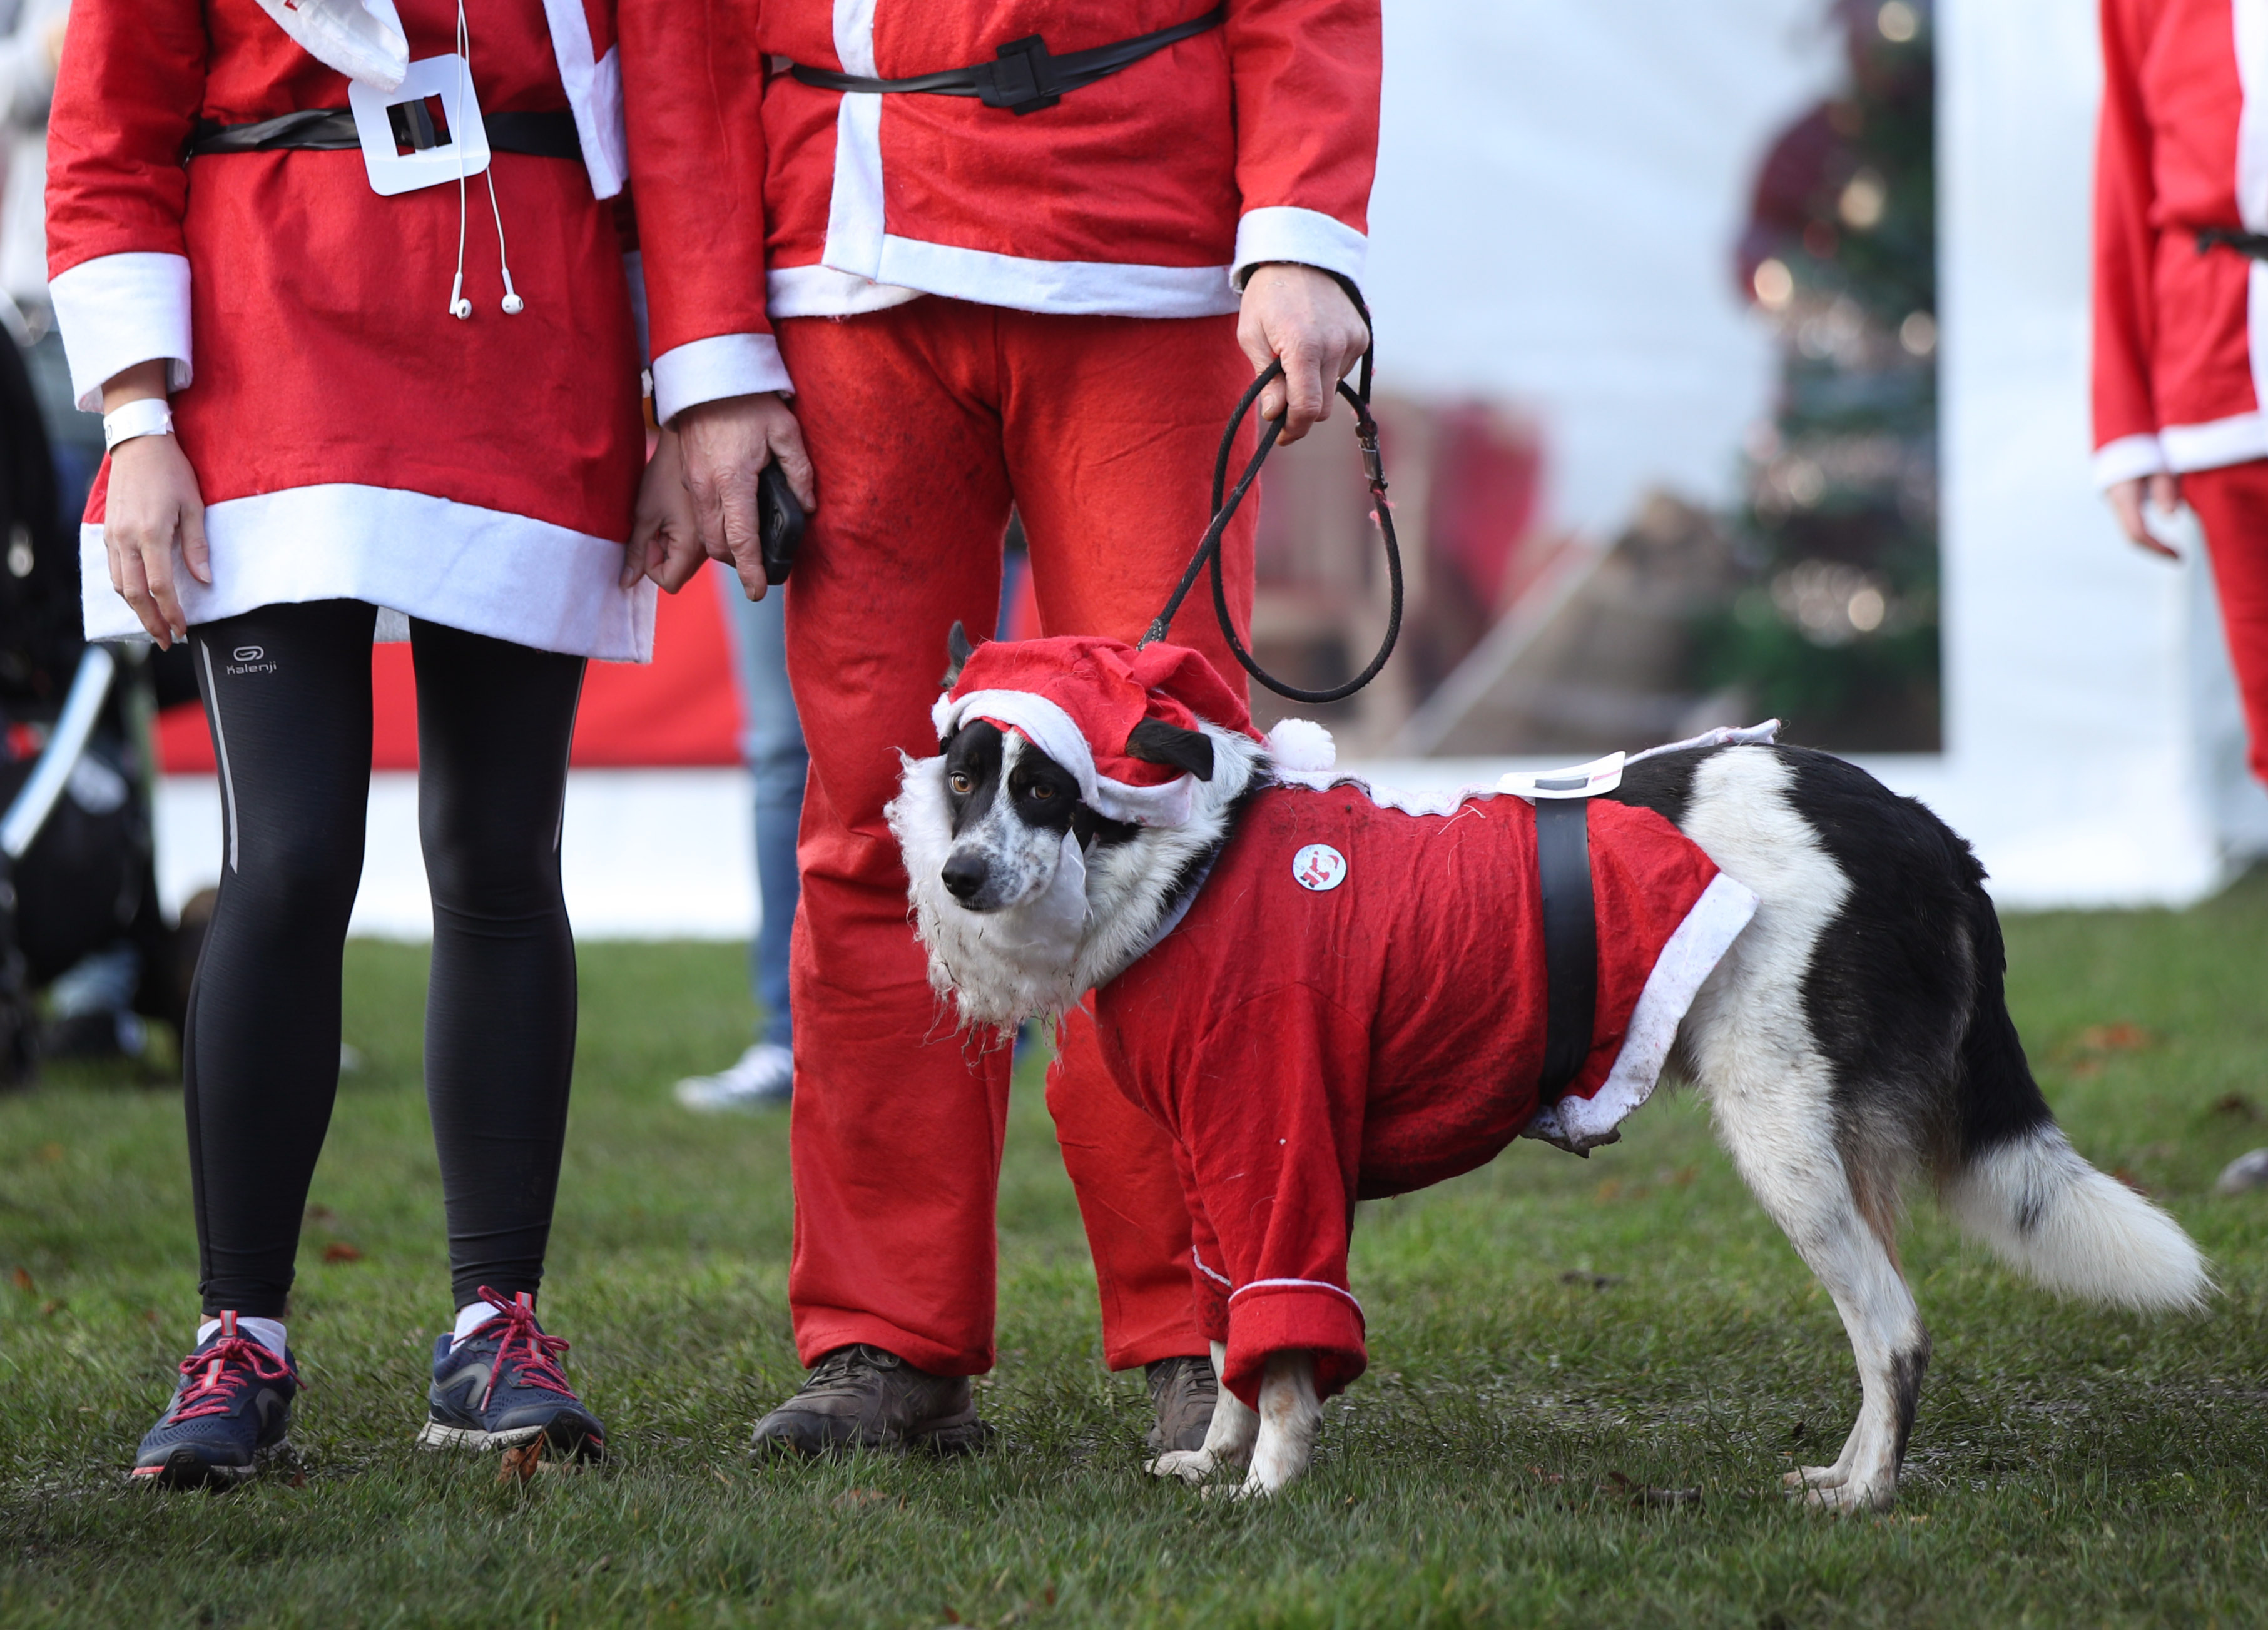 Participants and their dog taking part in the London Santa Run in Victoria Park, east London